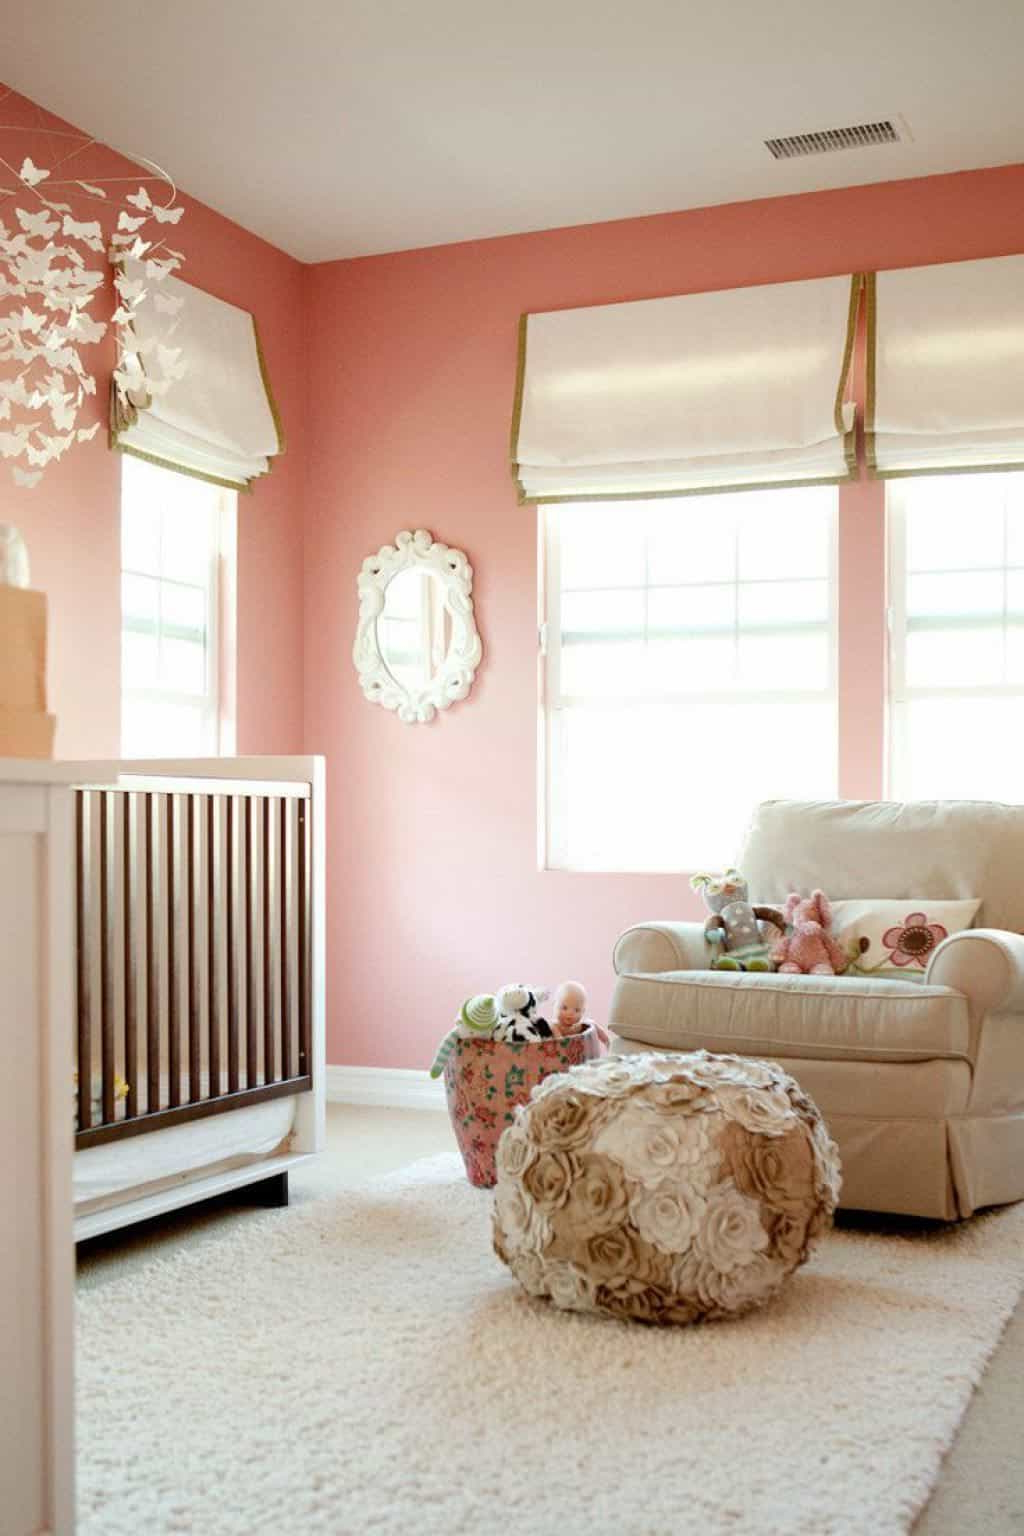 Nursery Wall Mirrors Pertaining To Widely Used Nursery Room With Peach Wall Color And Wall Mirror (View 15 of 20)